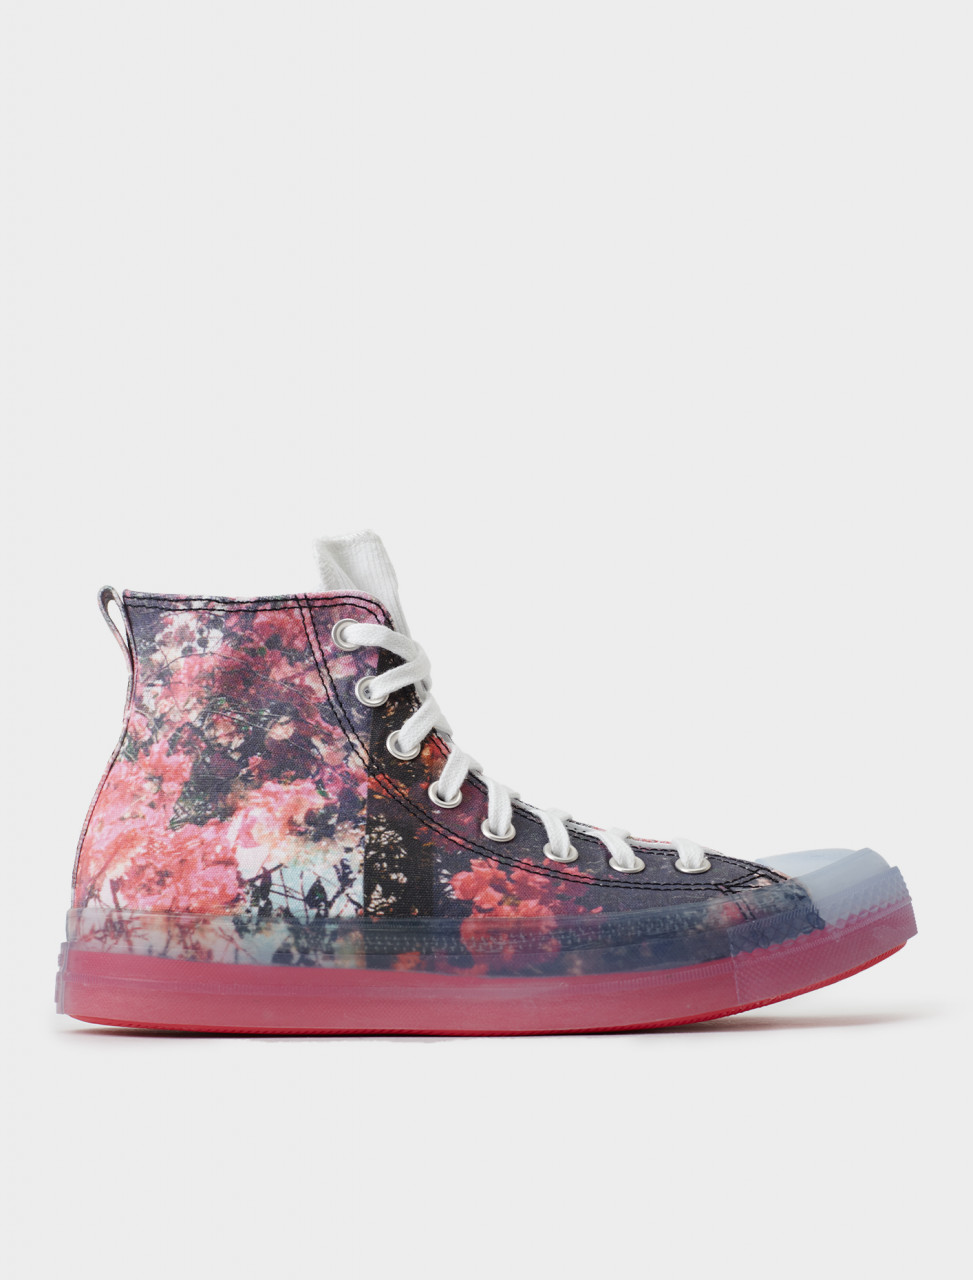 x Shaniqwa Jarvis CTAS CX High Sneaker in Teaberry